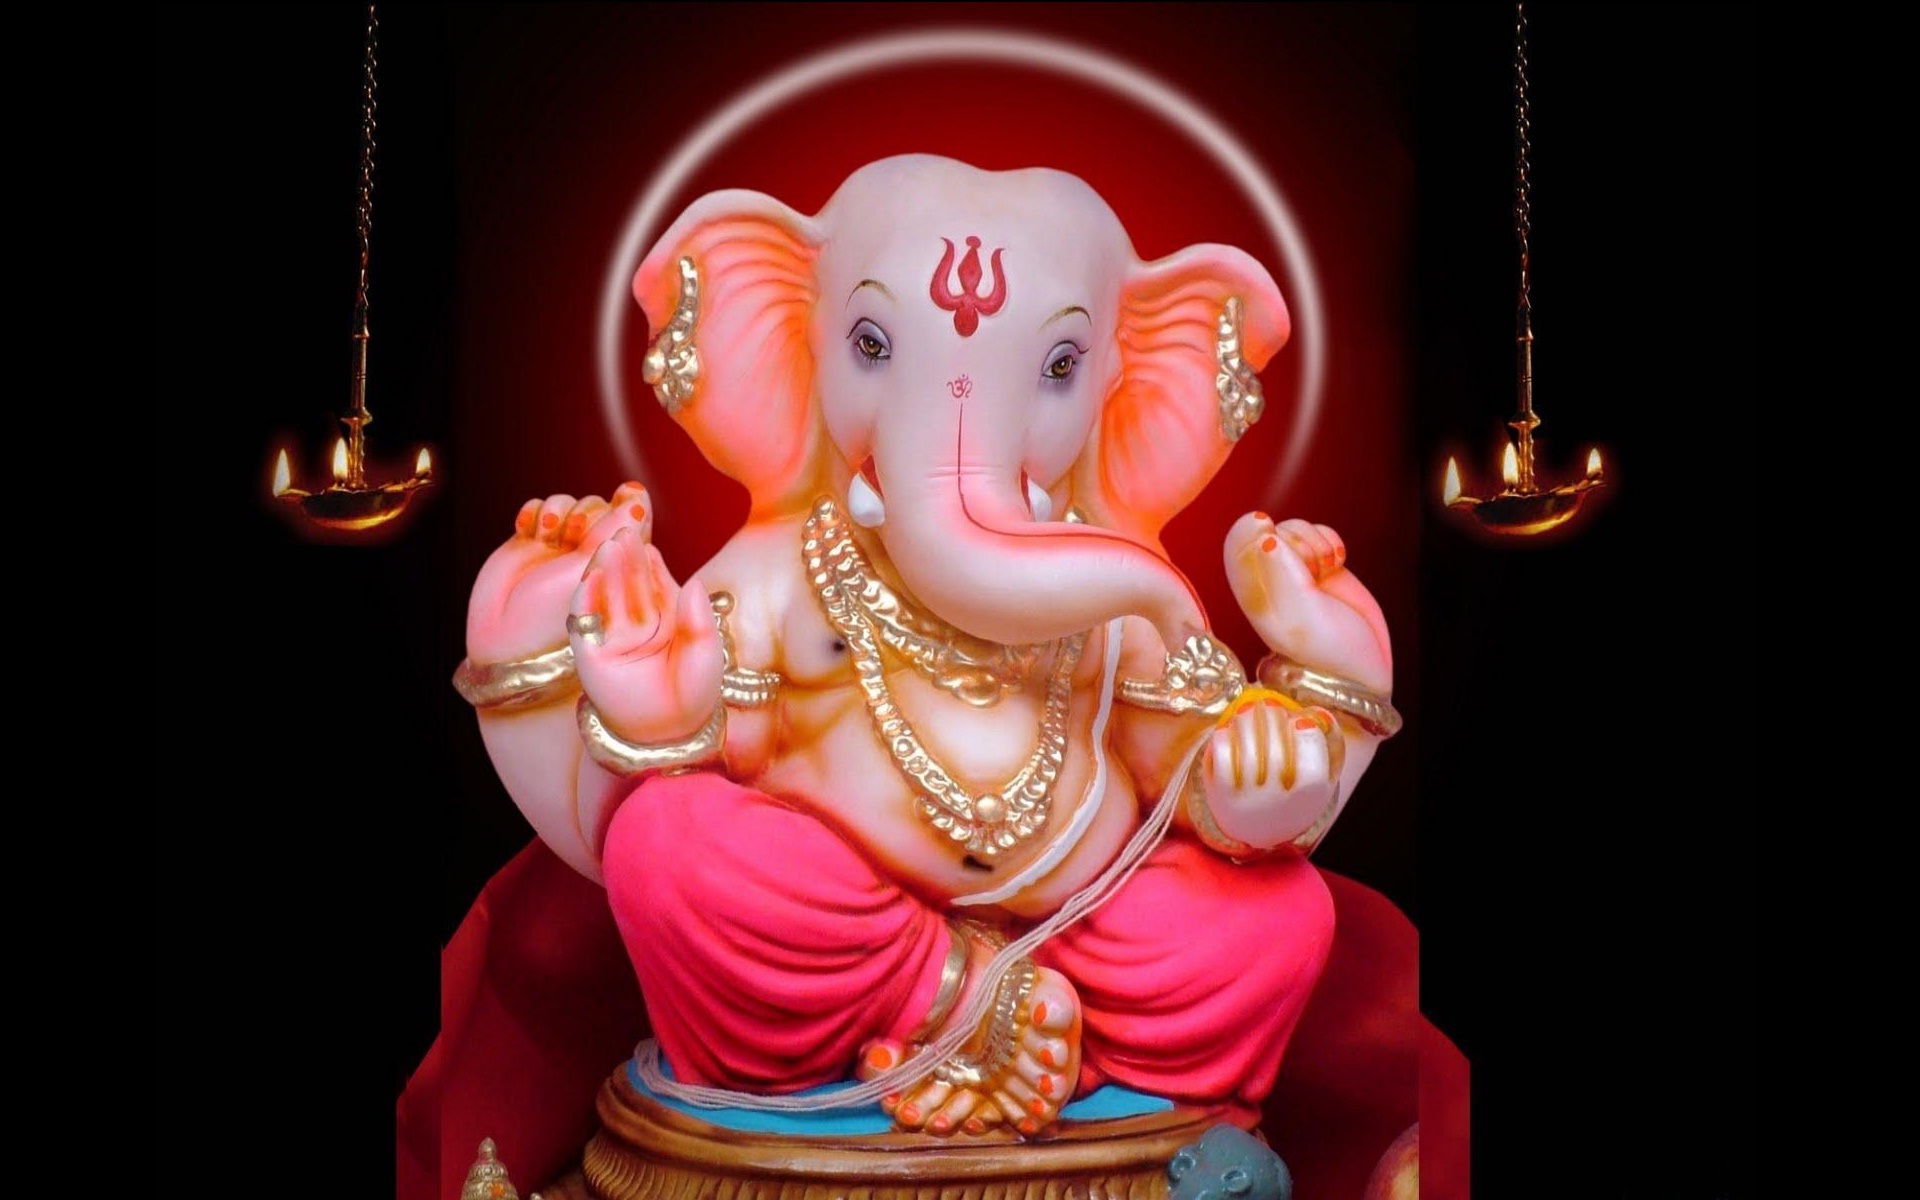 Hd wallpaper ganesh - Click On The Image To See Full Size And Then Right Click To Download